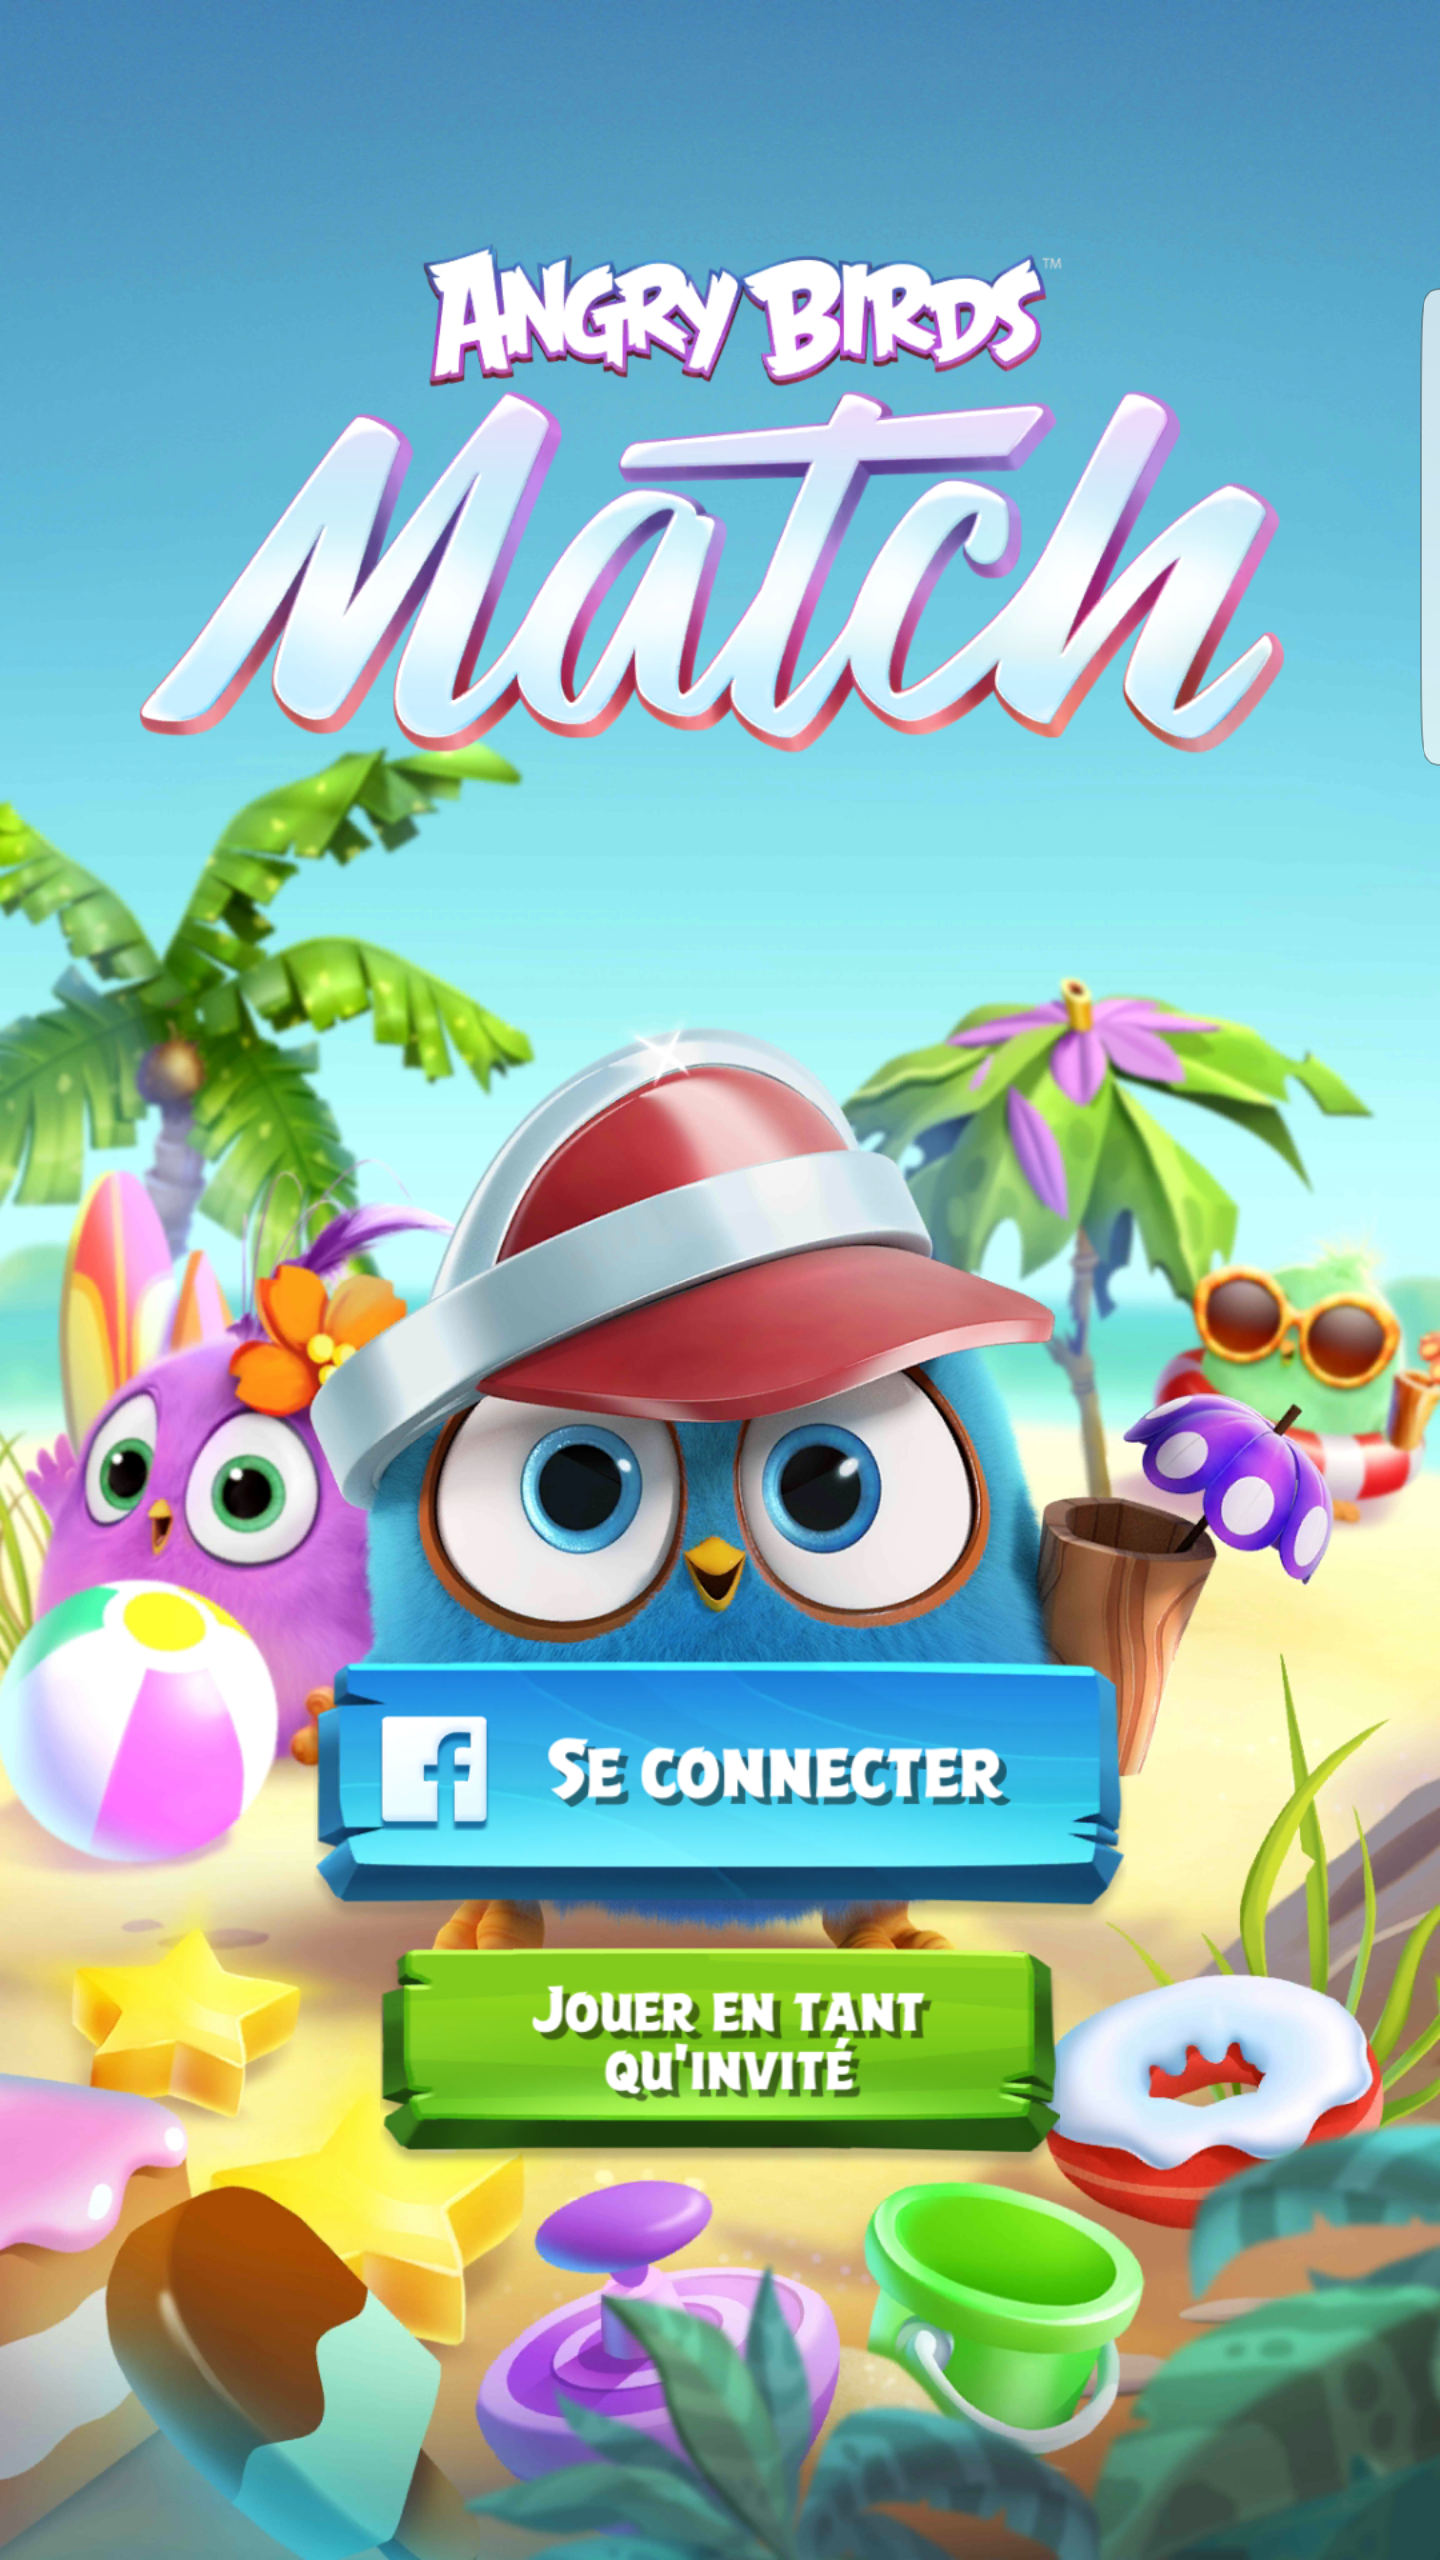 angry-birds-match-1